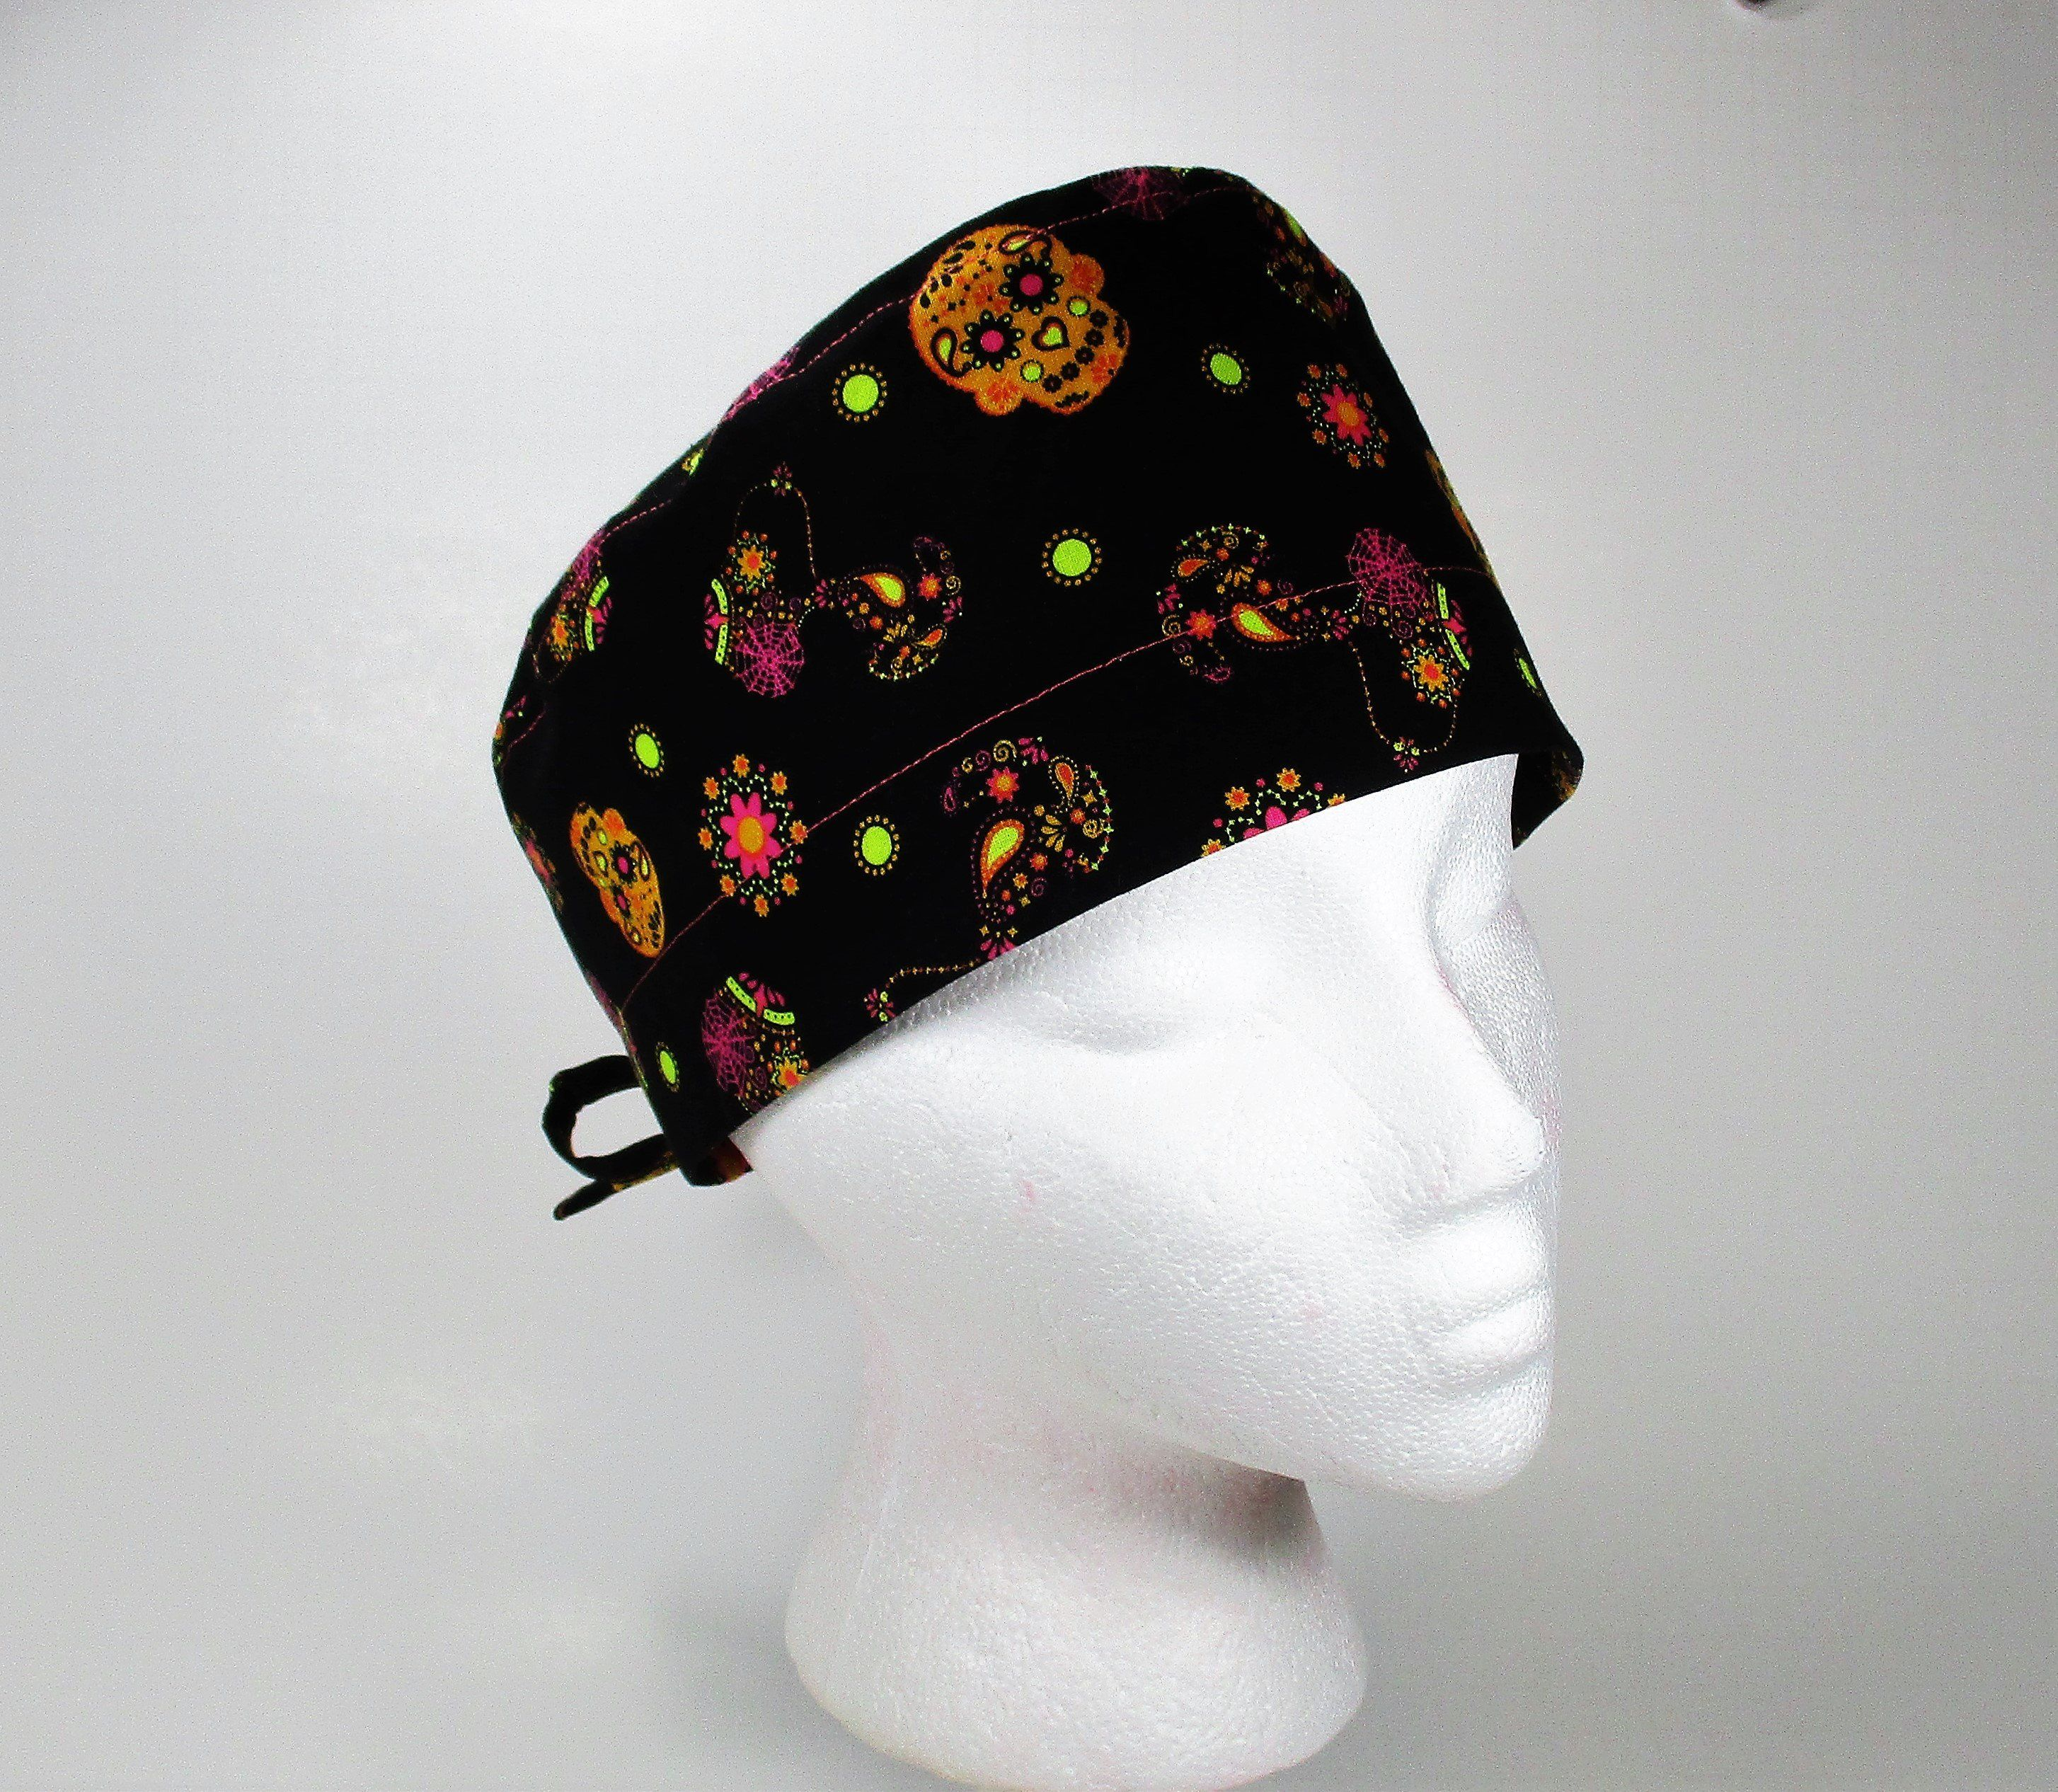 c0e20b95c Snoopy and Sugar Skulls on Black Novelty Unisex/Men's Tie Back Surgical  Scrub Cap/Pixie Cap/Chemo Hat by FoodFunScrubHats on Etsy